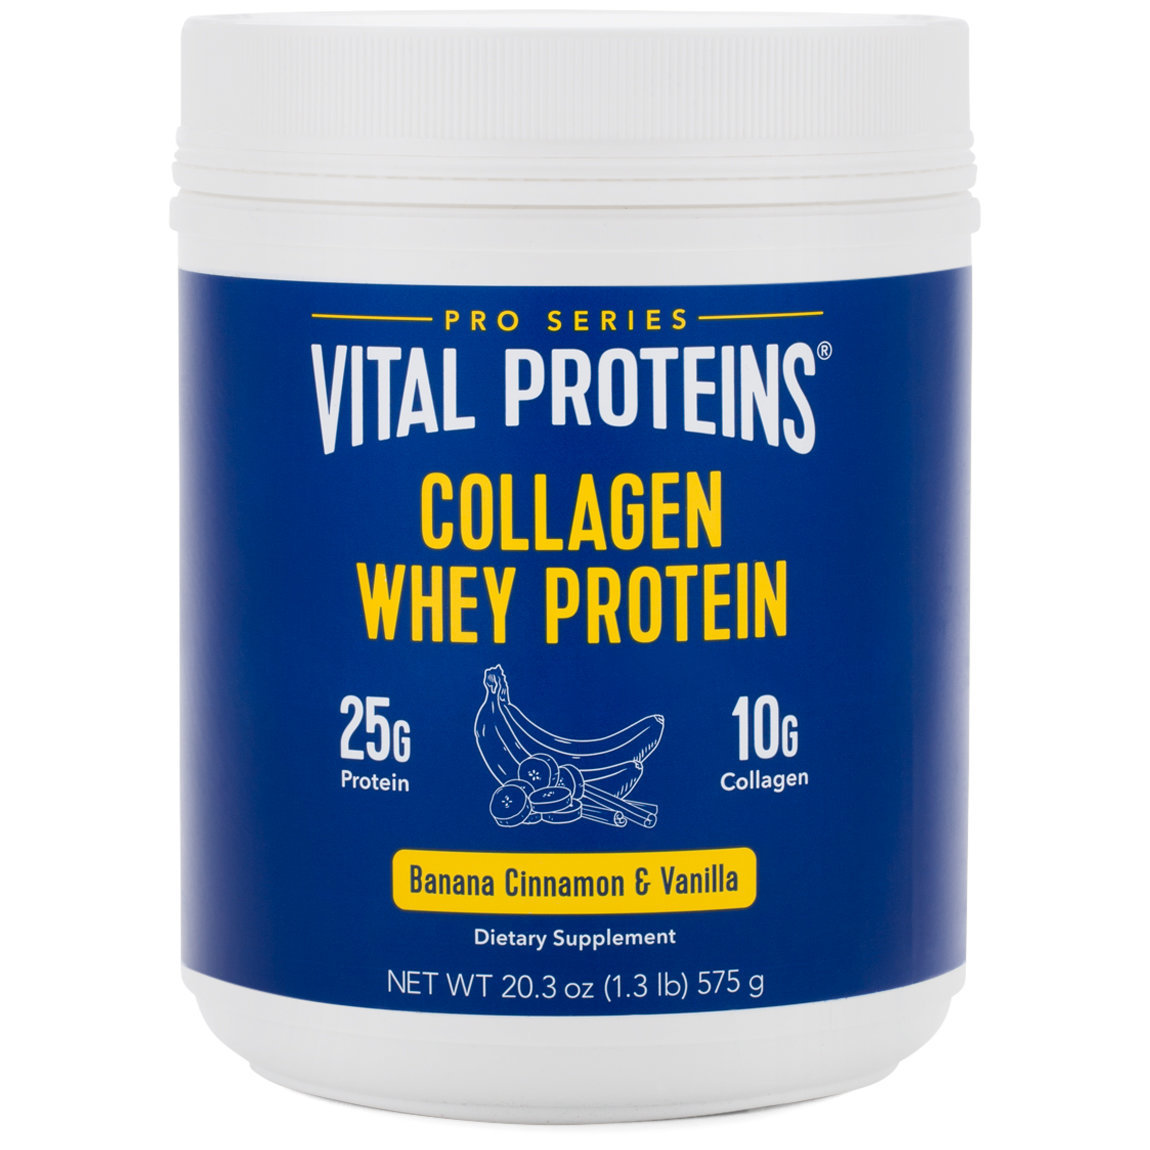 Vital Proteins Collagen Whey Protein - Banana, Cinnamon & Vanilla product smear.